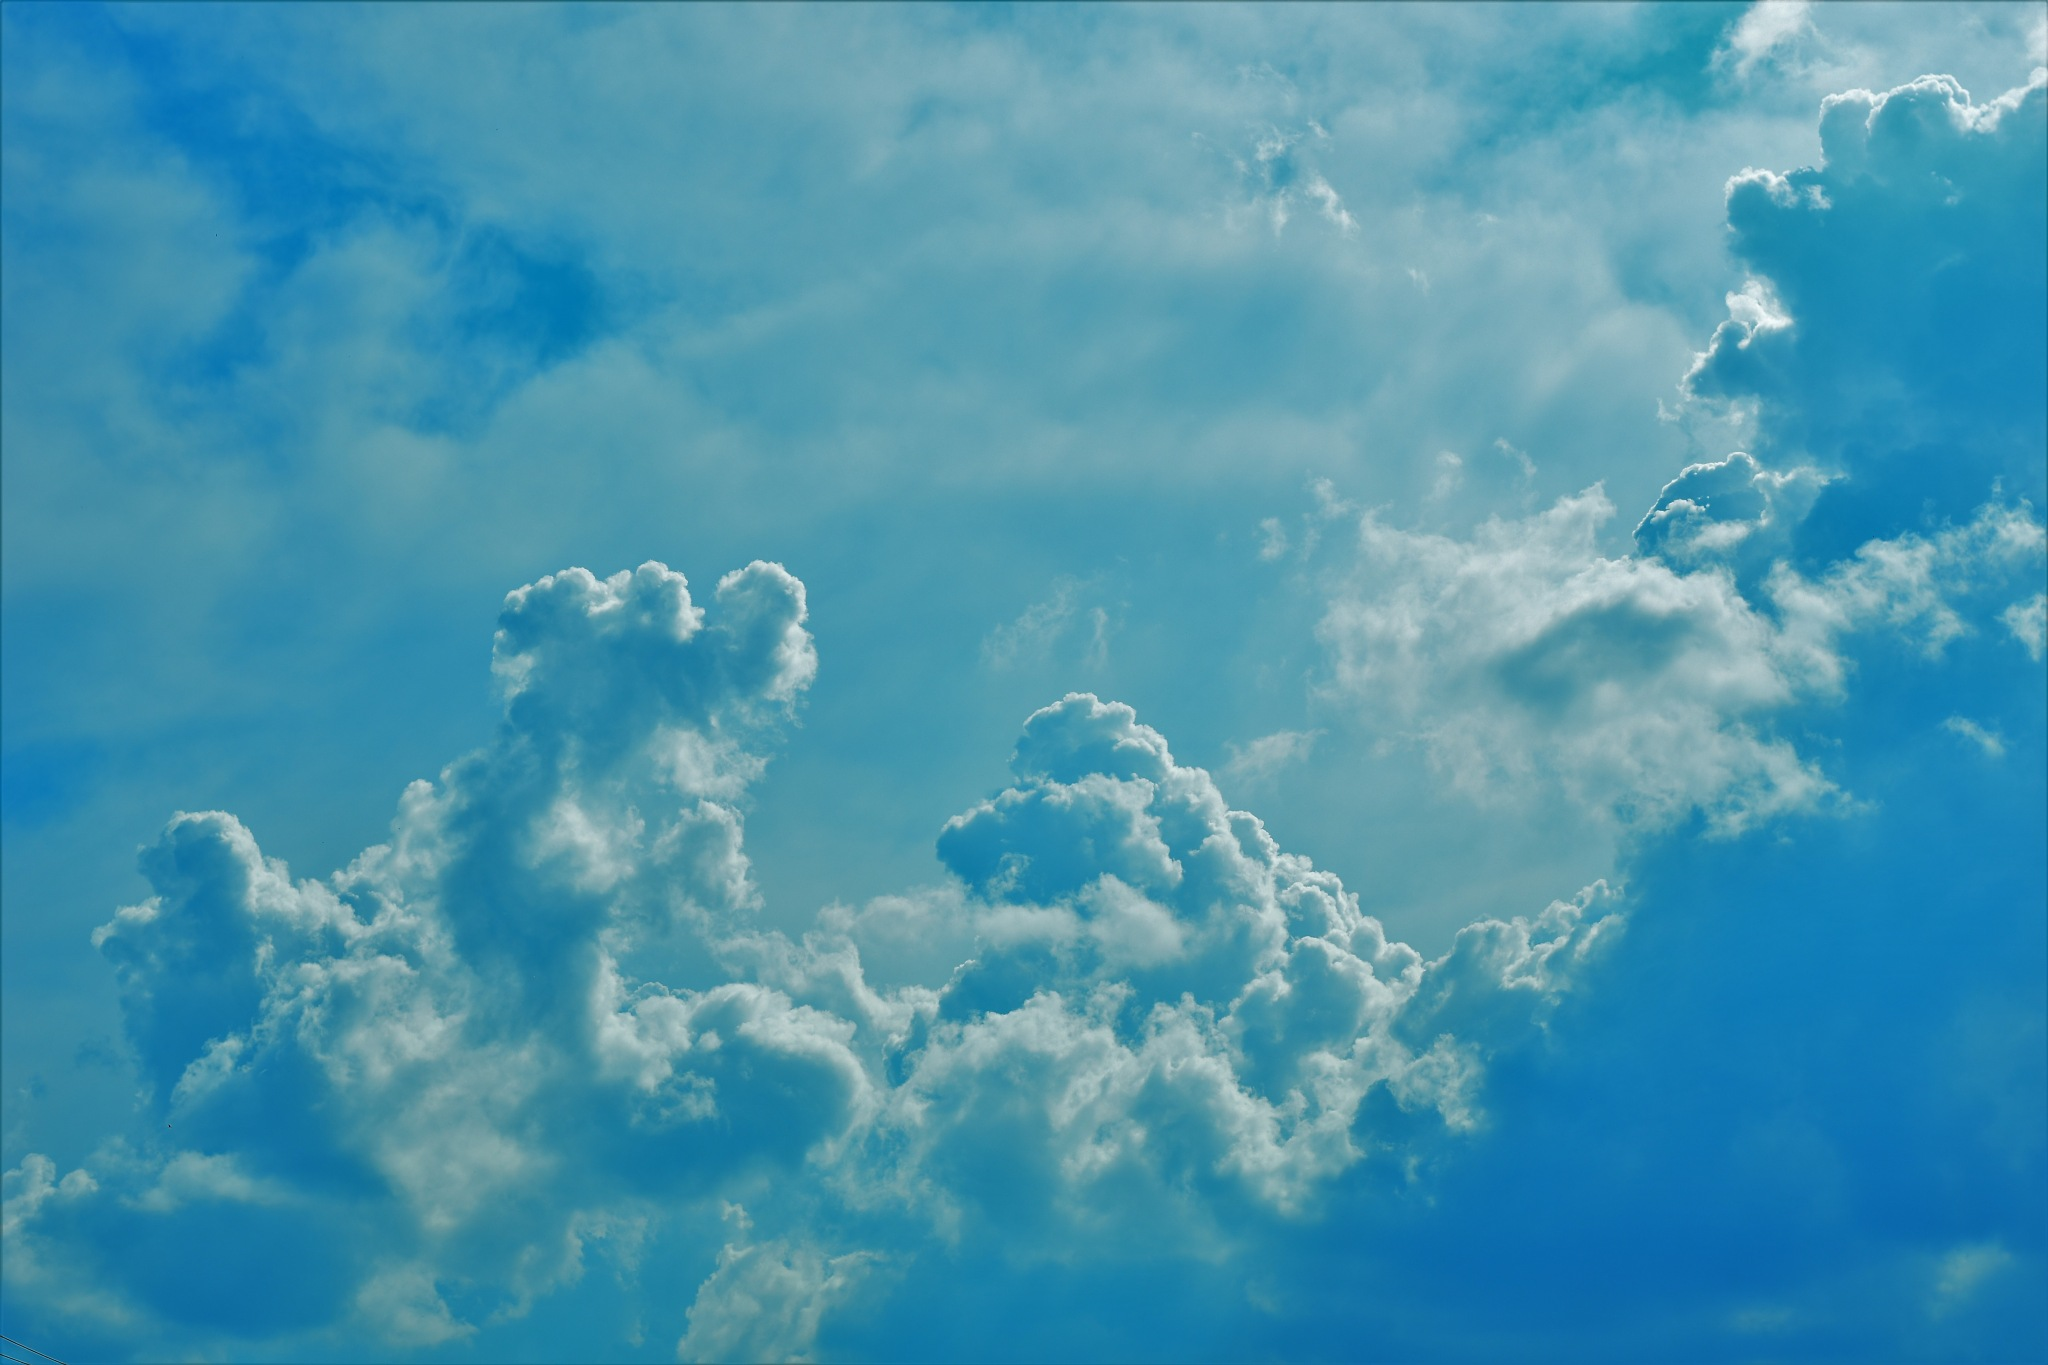 Clouds by Greg Knott